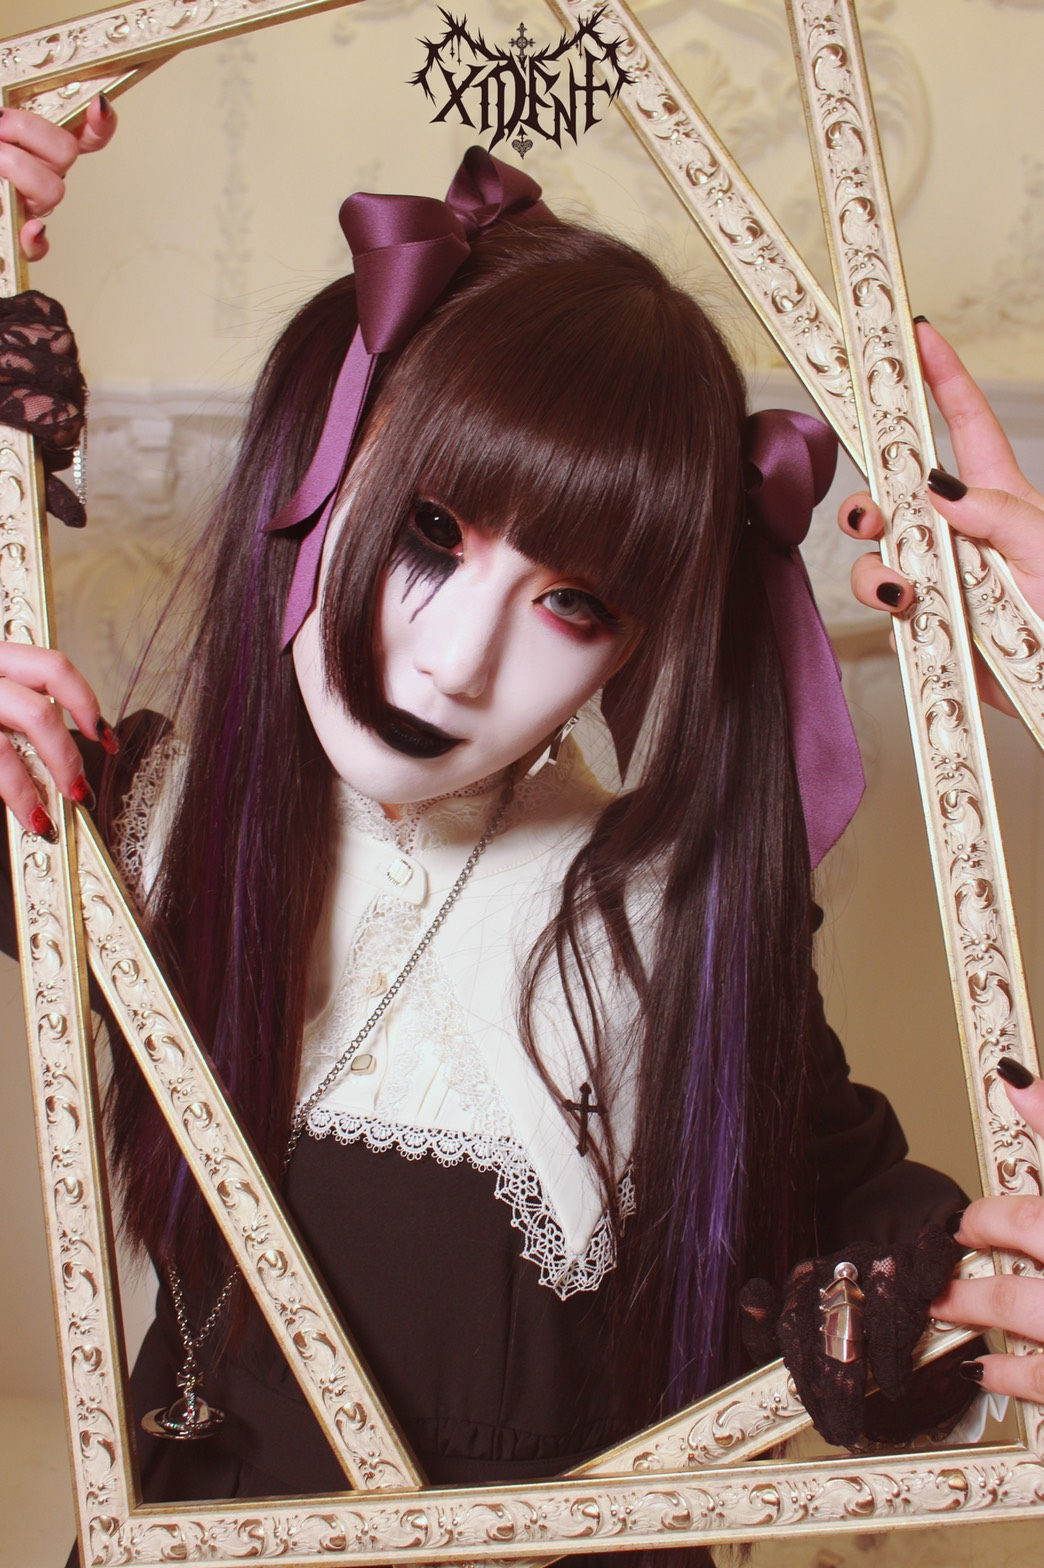 Xii (X!DEN†, or XIDENT Member) Age, Bio, Wiki, Facts & More